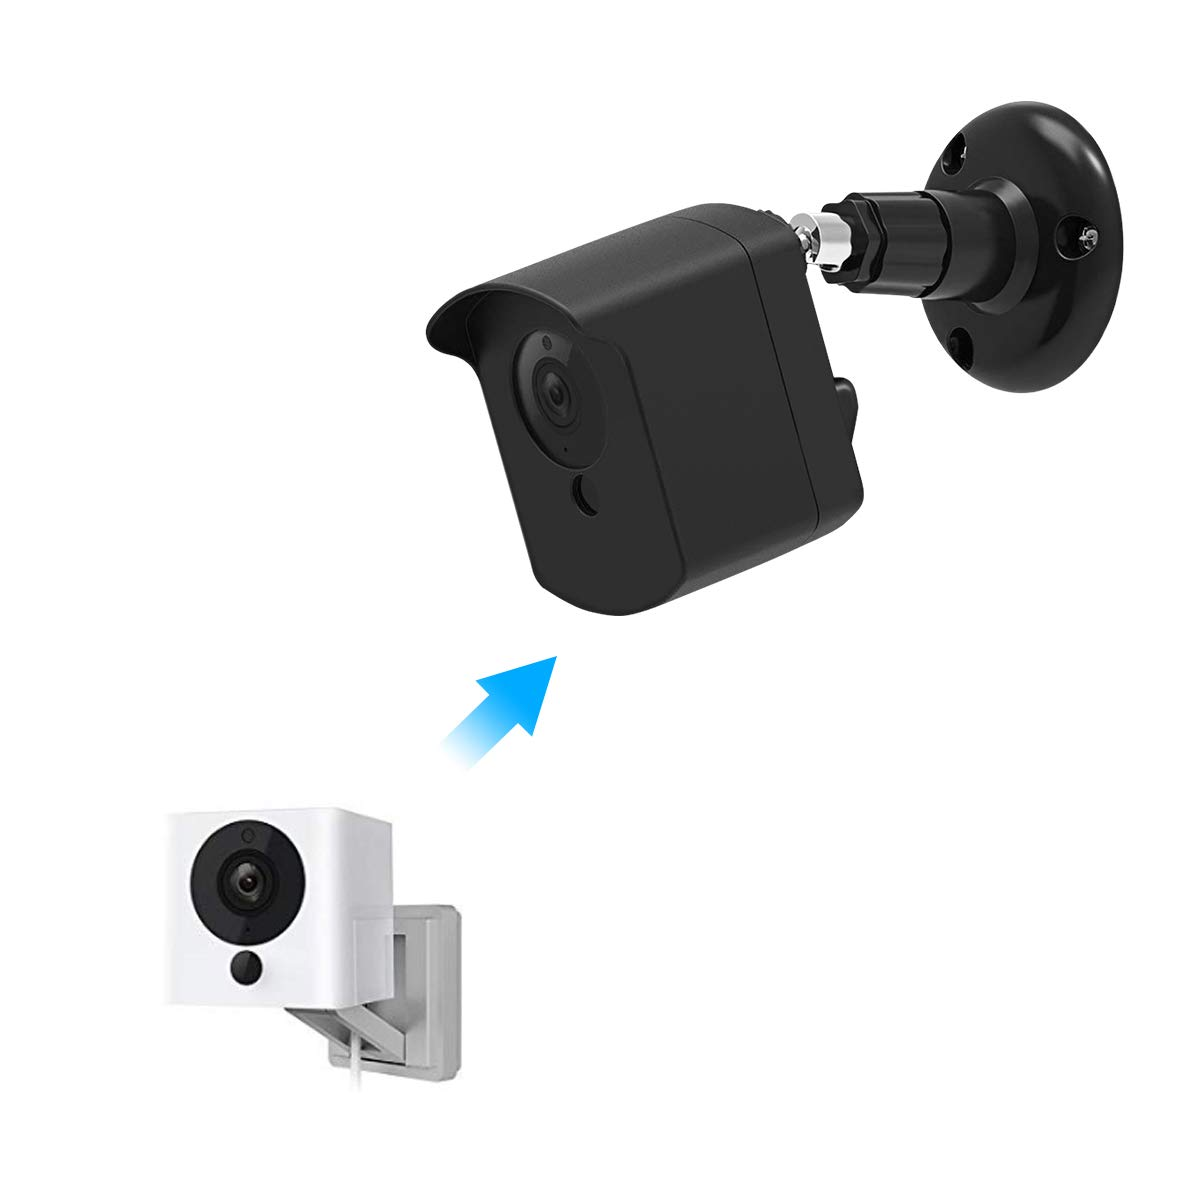 Mrount Wyze Camera Wall Mount Bracket, Protective Cover with Security Wall Mount for Wyze Cam V2 V1 and Ismart Spot Camera Indoor Outdoor Use by (Black, 1 Pack) by Mrount